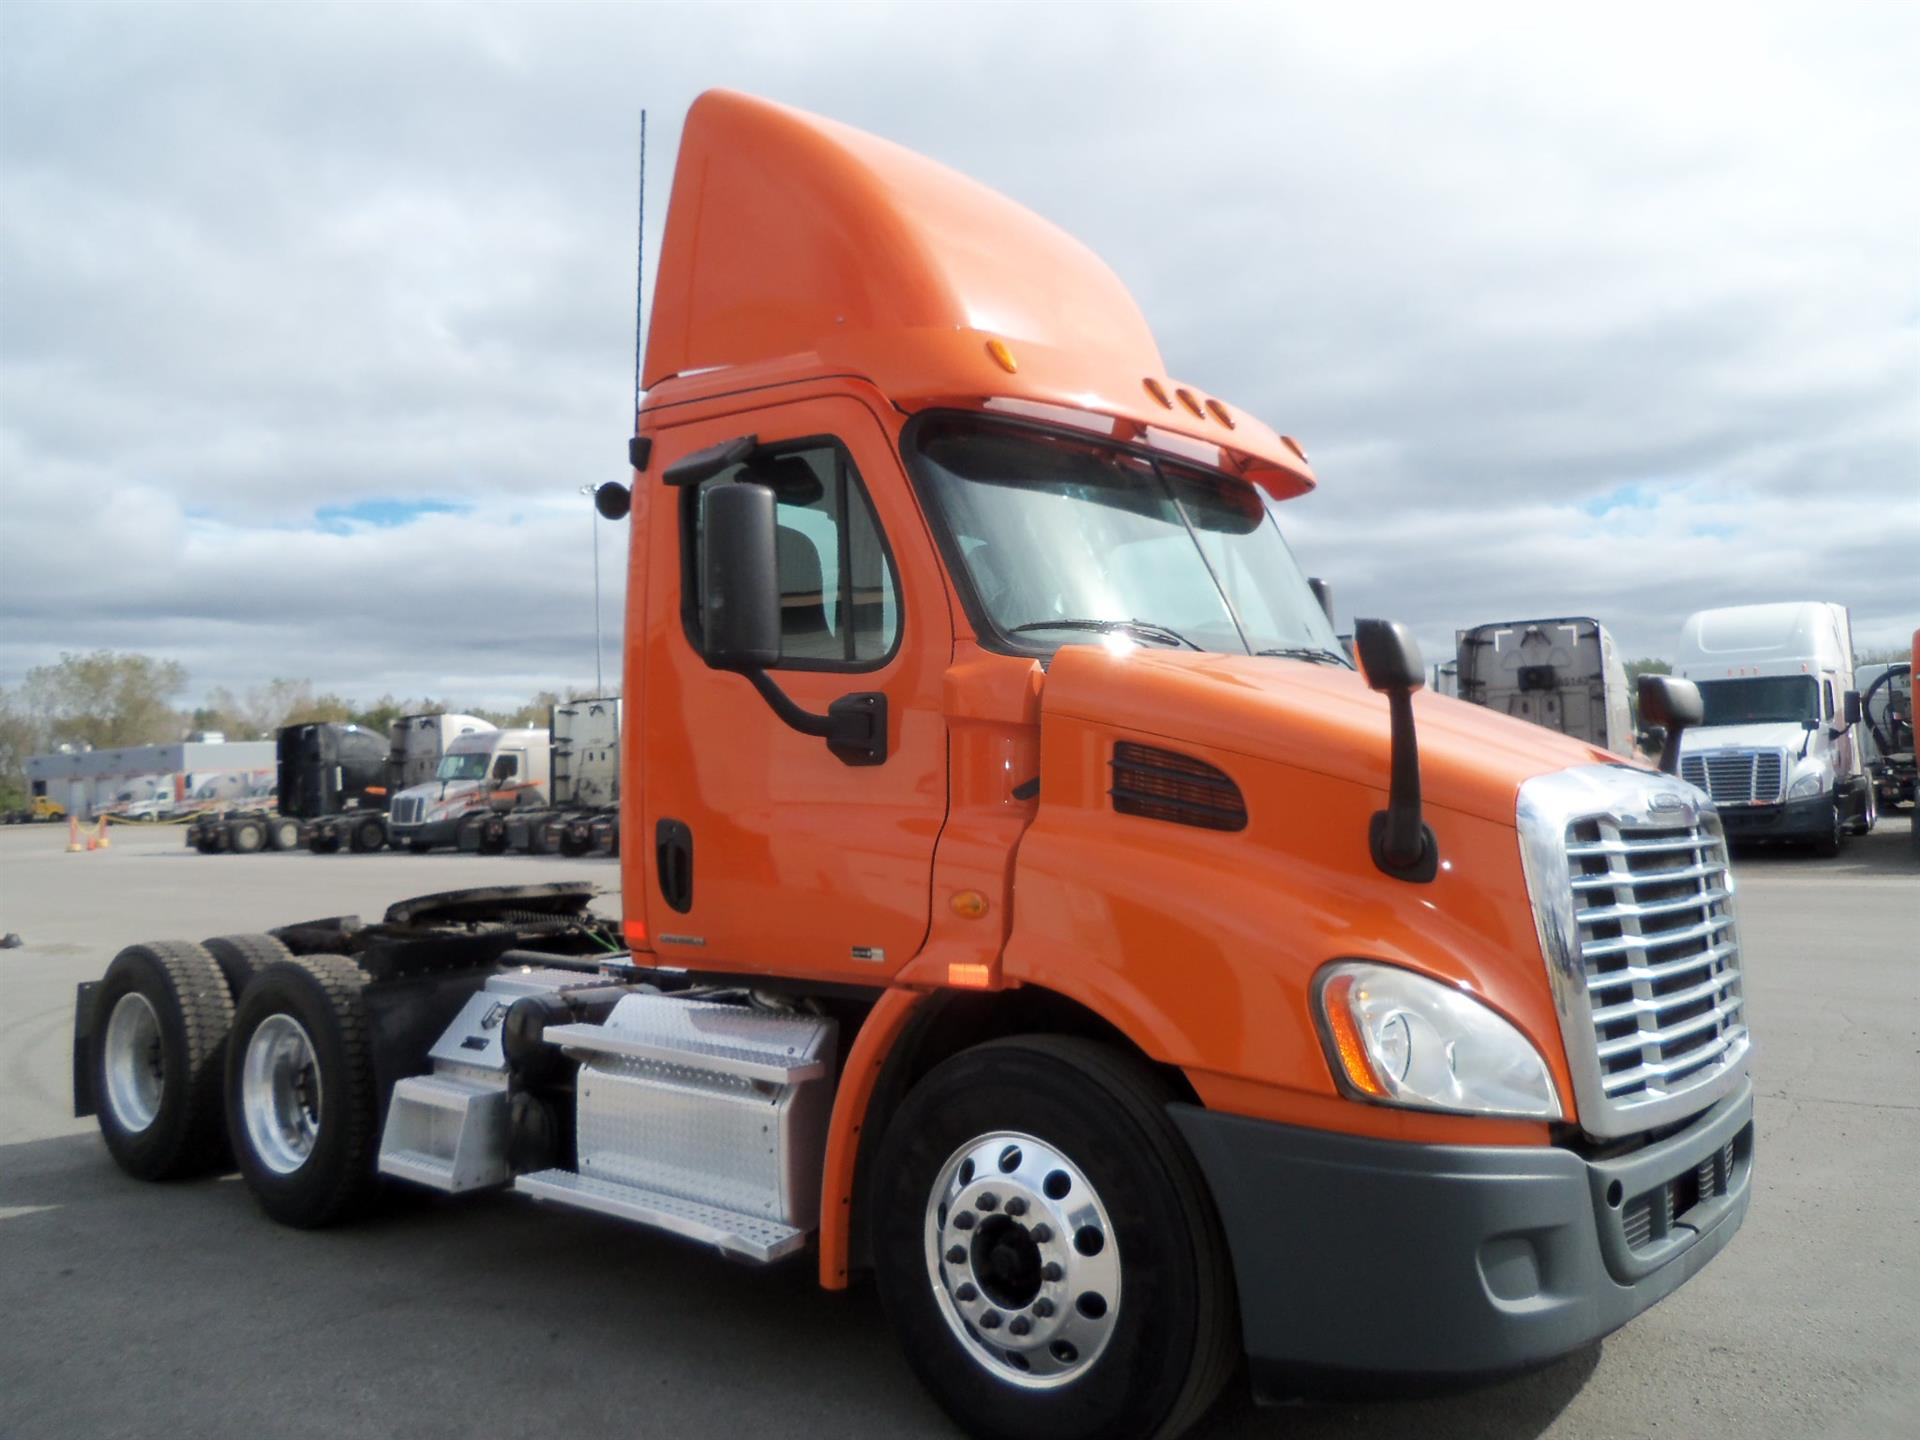 USED 2012 FREIGHTLINER CASCADIA DAYCAB TRUCK #134480